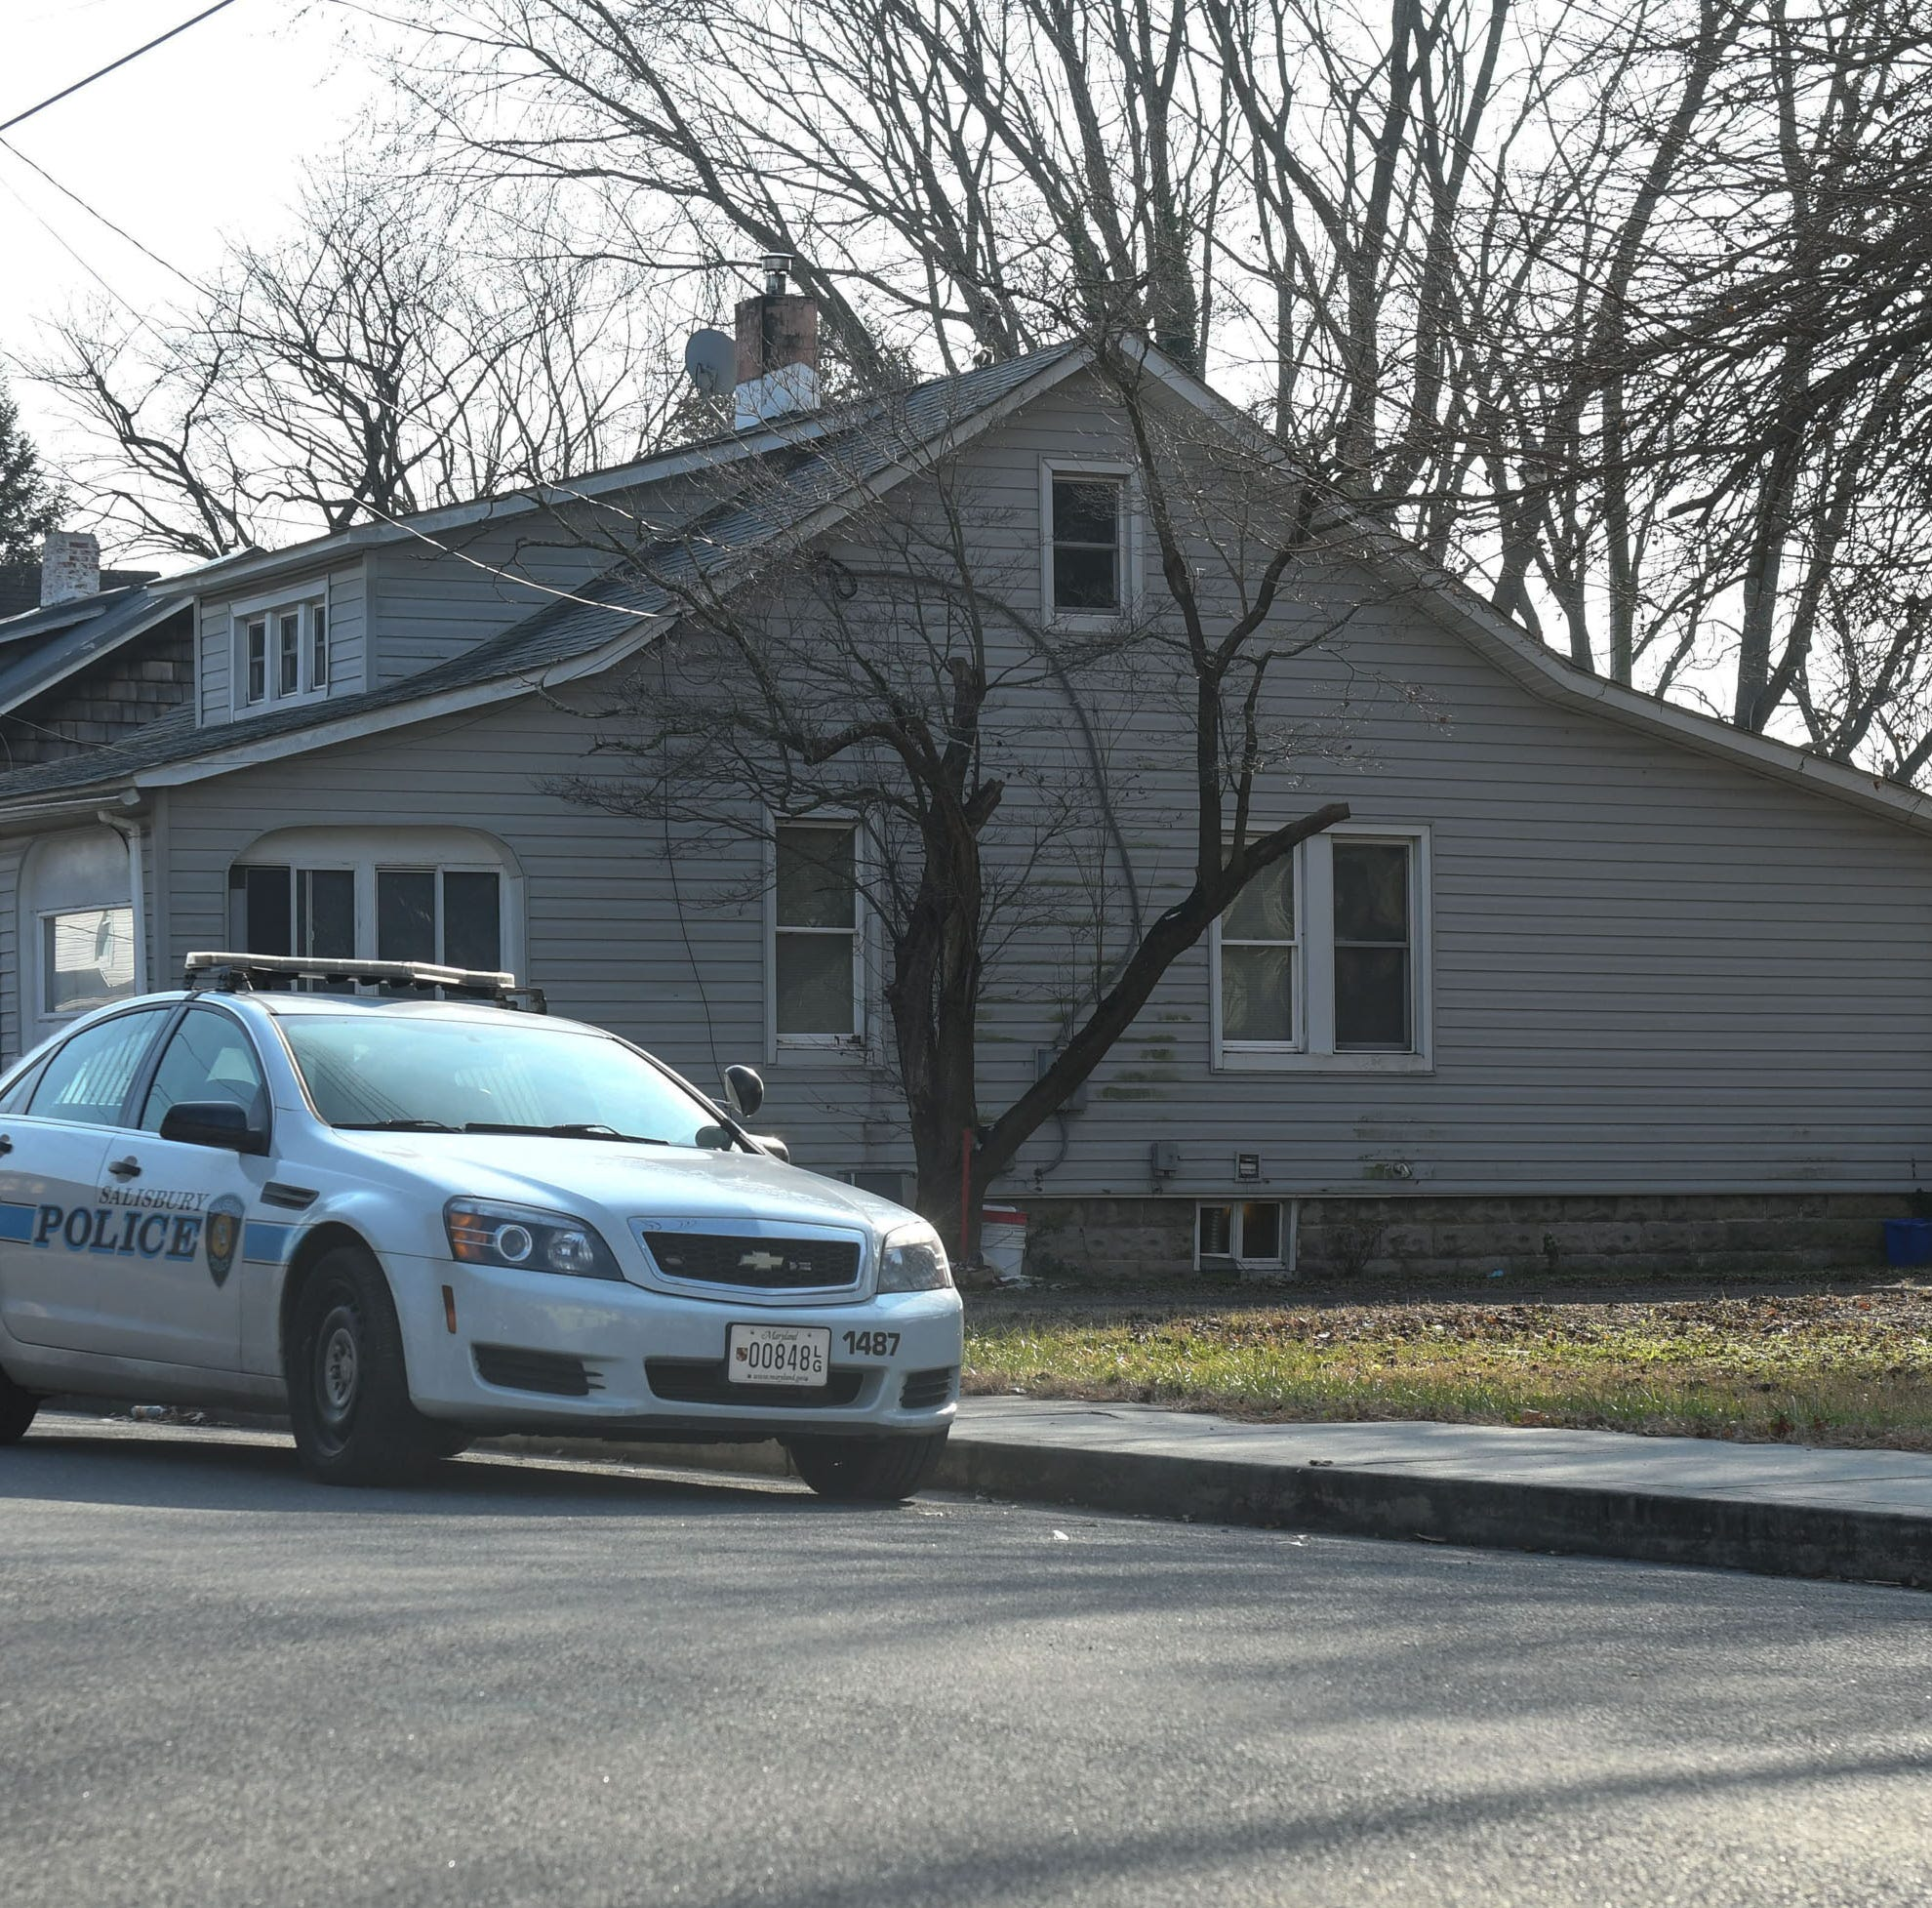 The Salisbury Police Department is working to locate a suspect in a Wednesday shooting at the 200 block of Marshal Street in Salisbury.